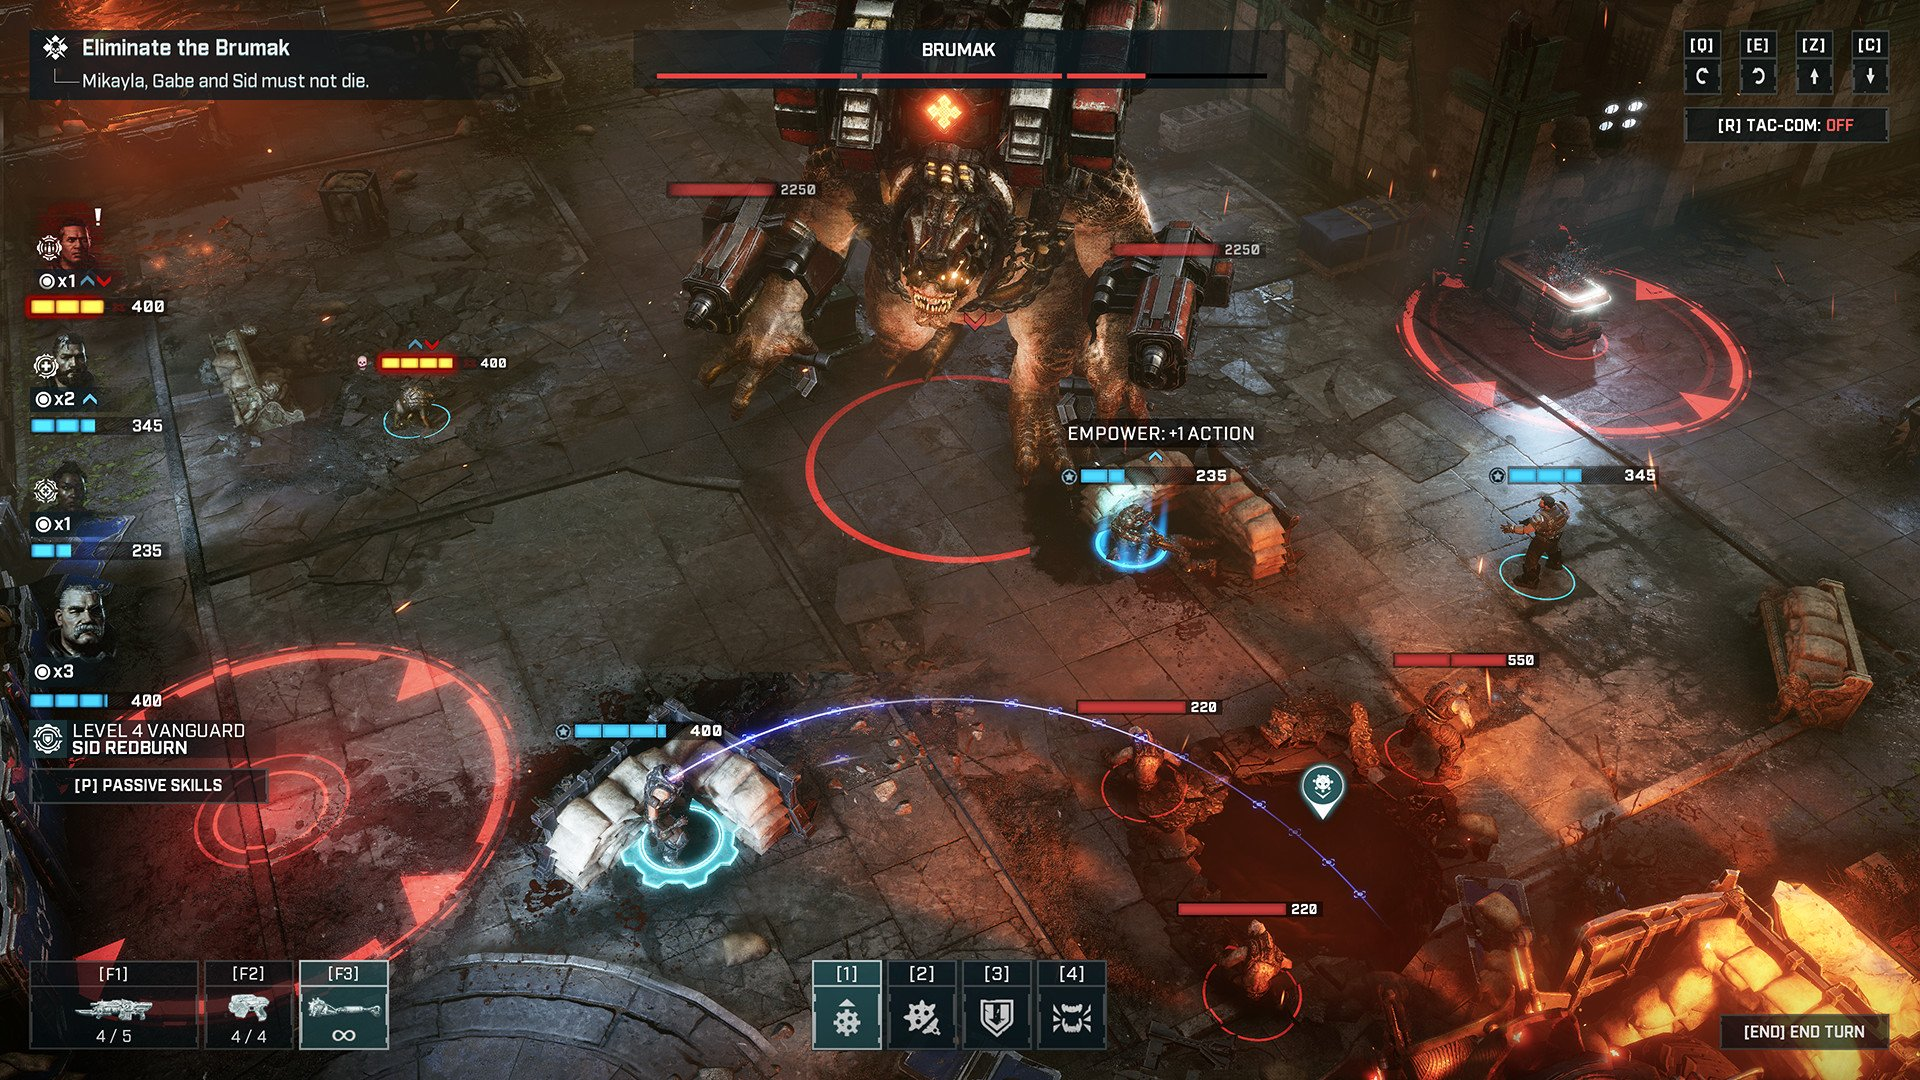 How to save in Gears Tactics